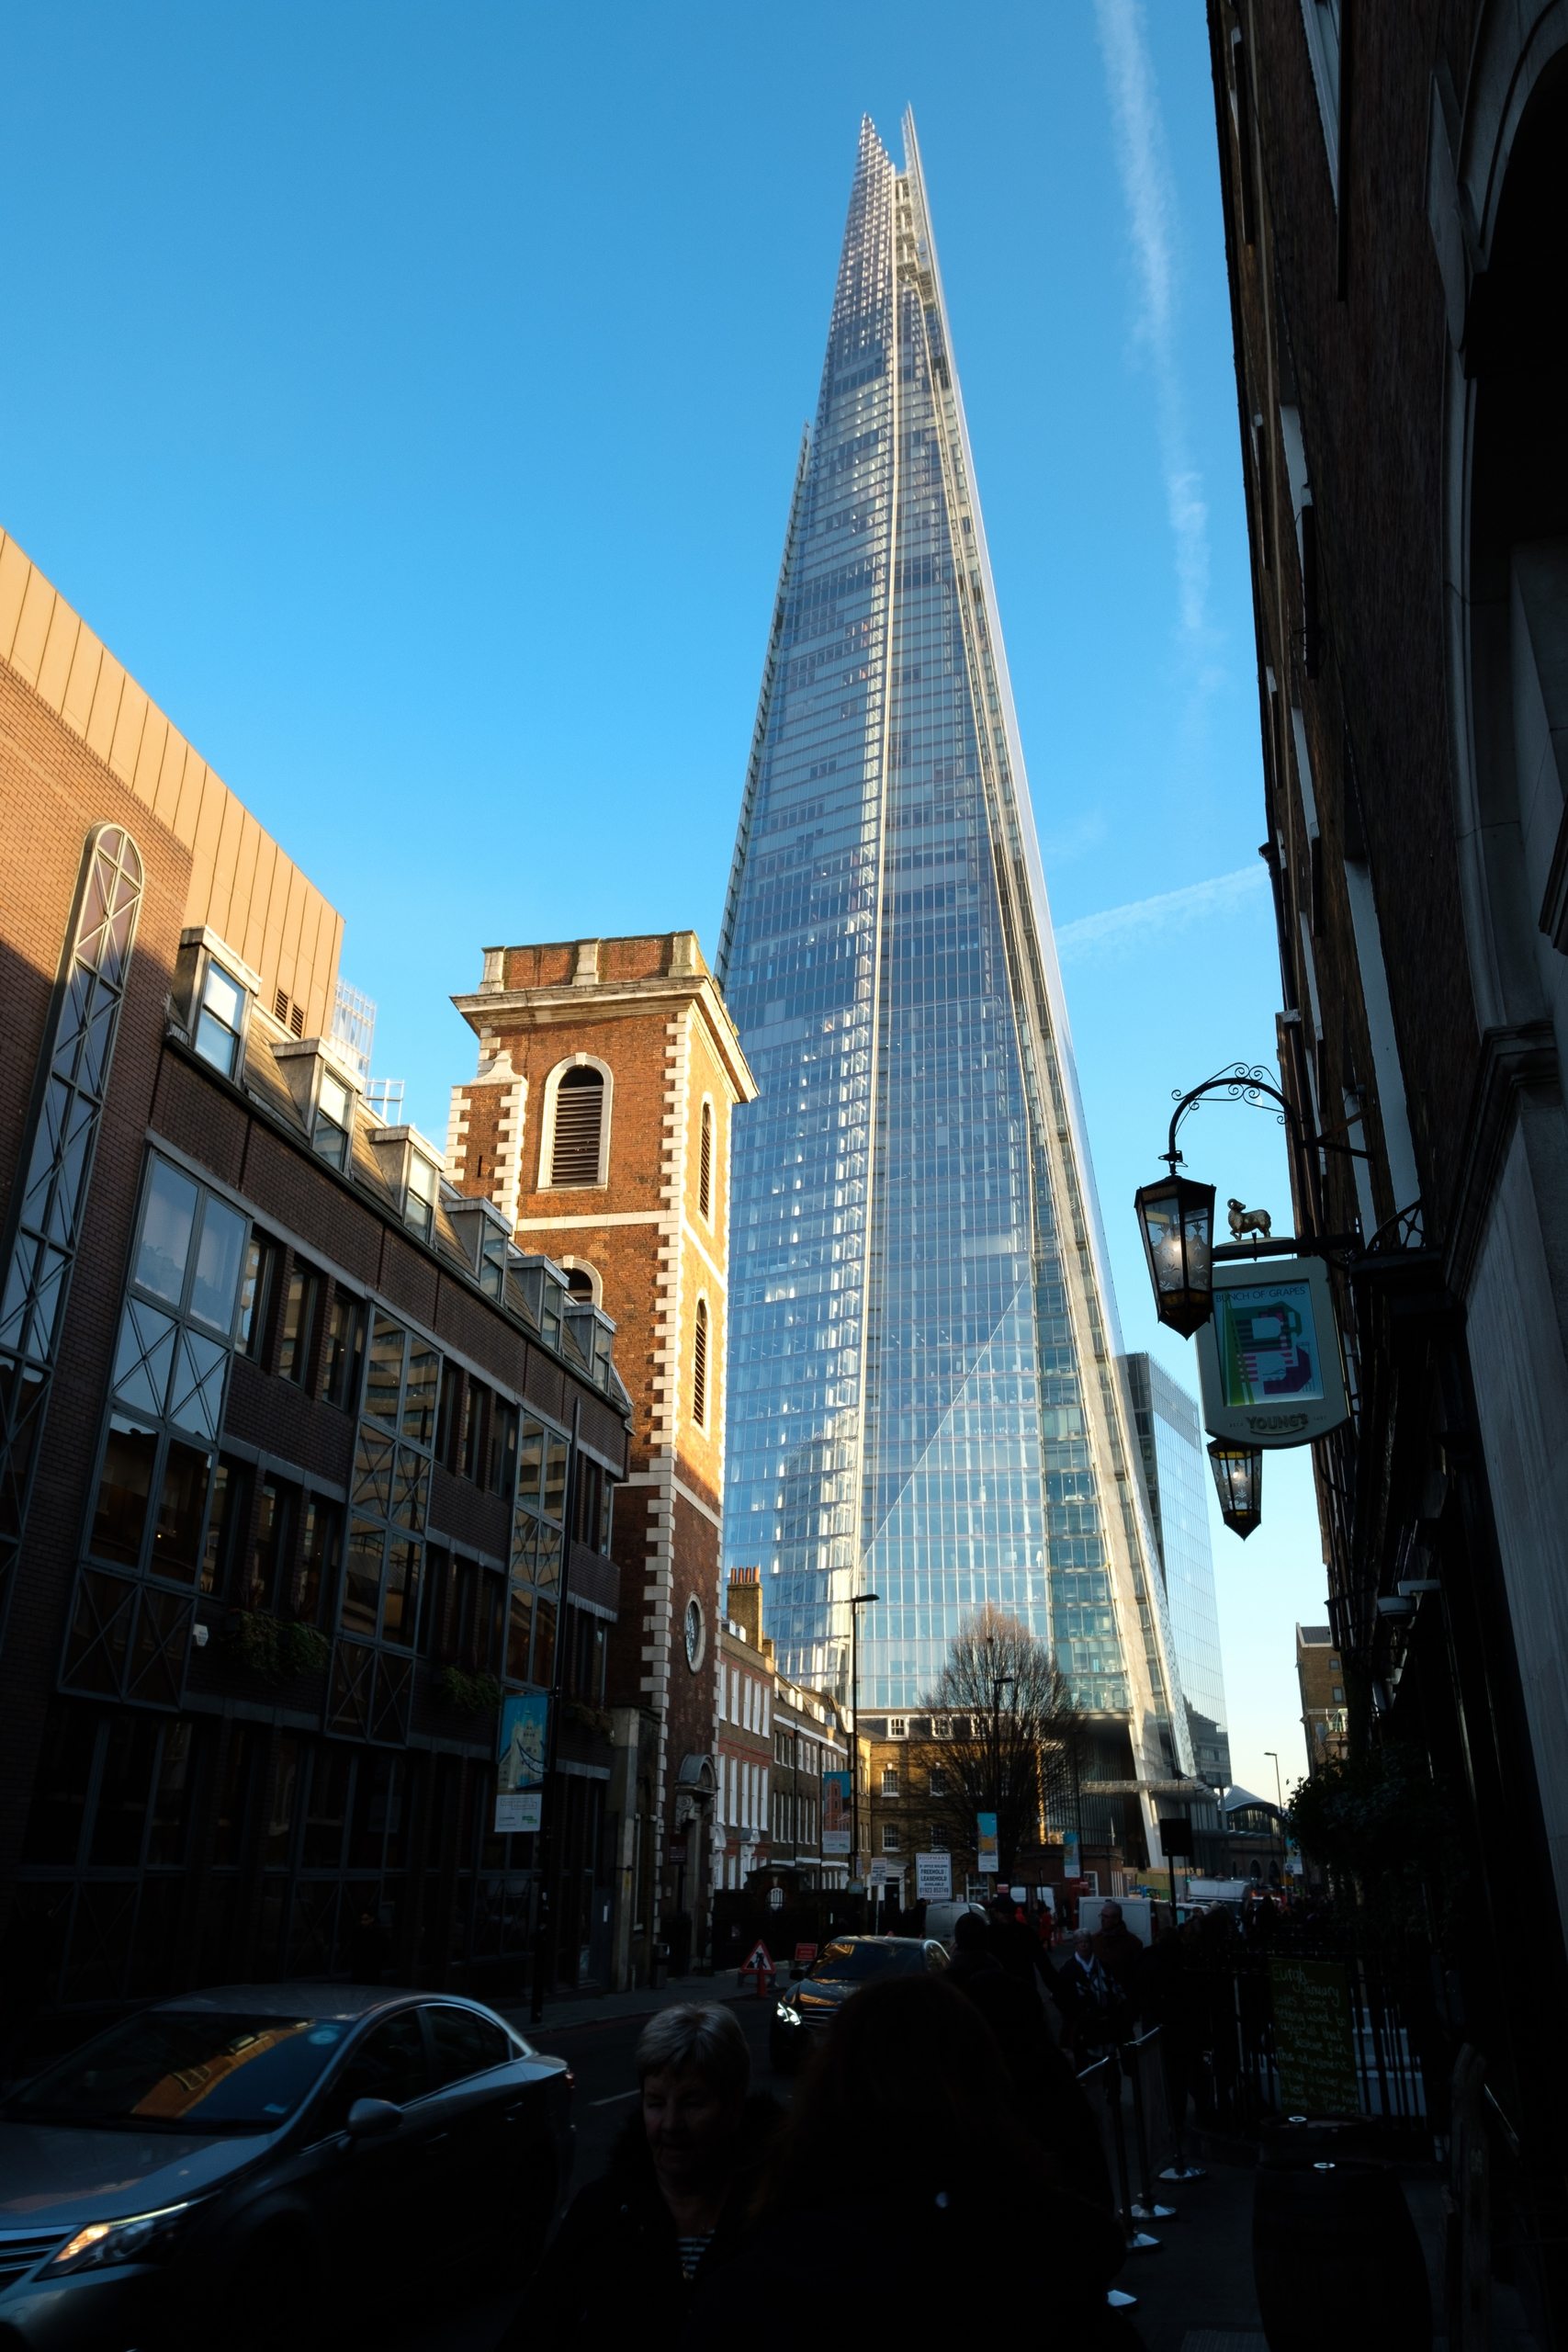 Shard. glass tower sky building - stephenwhite | ello